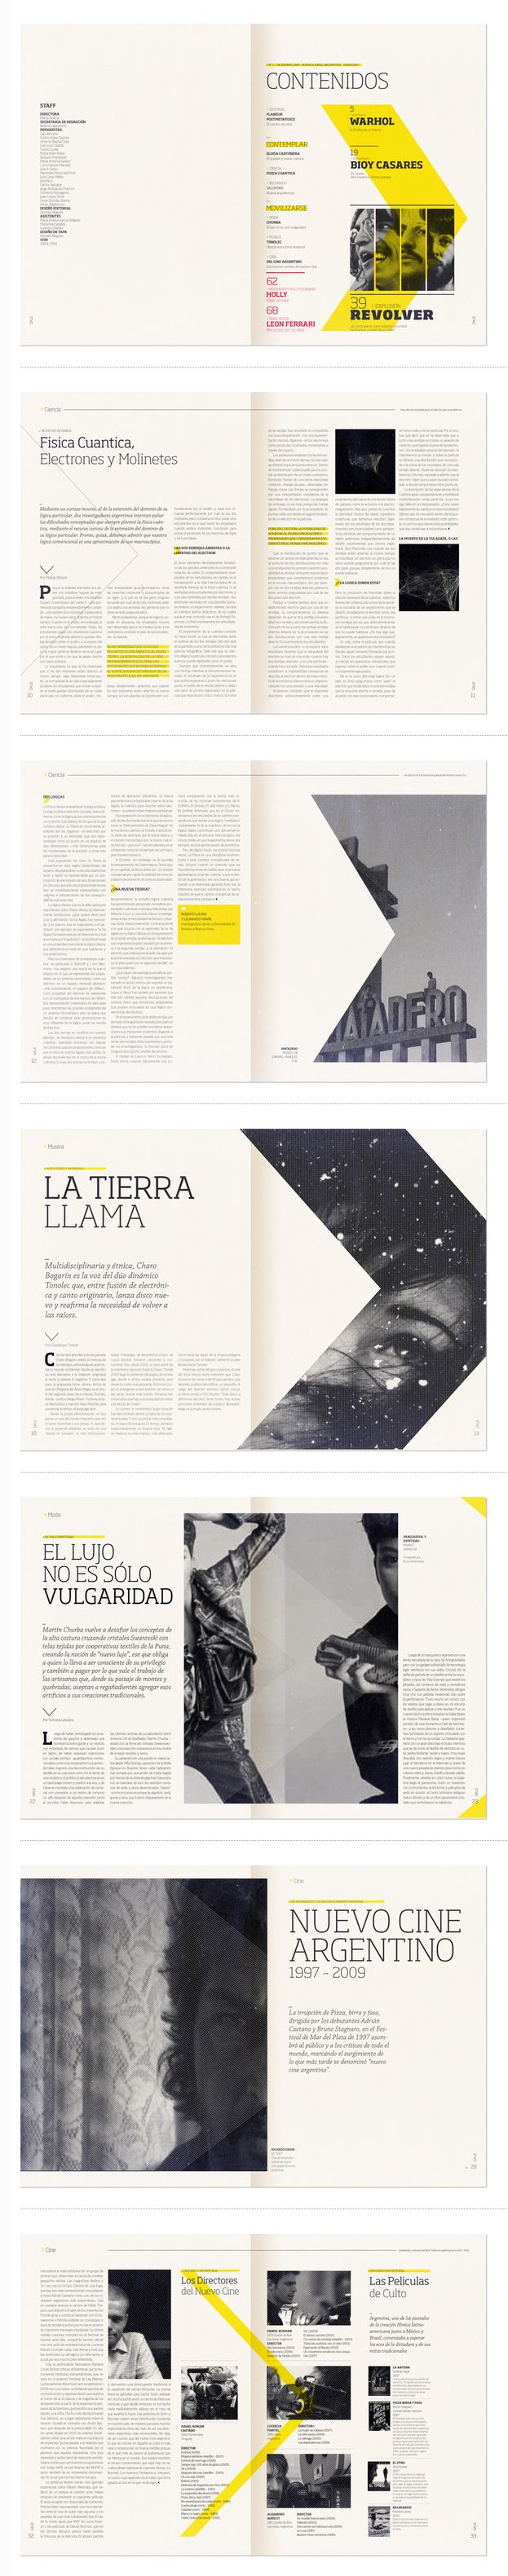 "I love the repeated use of this """" shape to create consistency and movement throughout the pages of this magazine design. The bold yellow color makes a big impact."